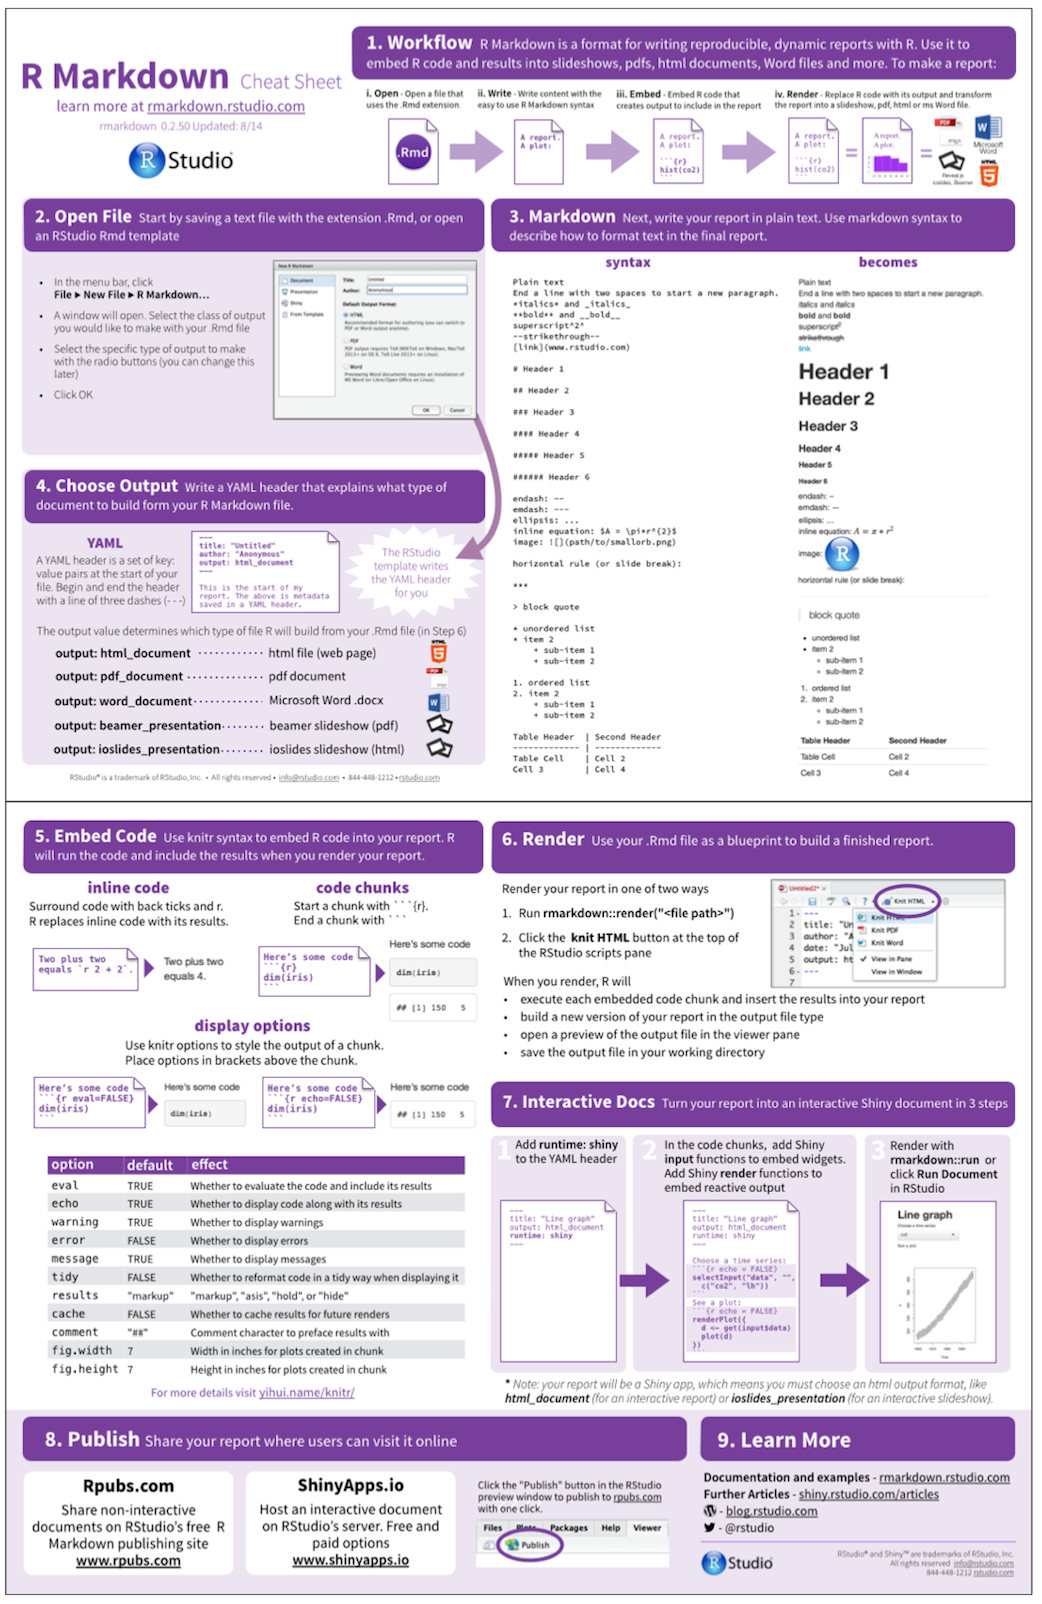 Shiny - The R Markdown Cheat sheet | Data Science in 2019